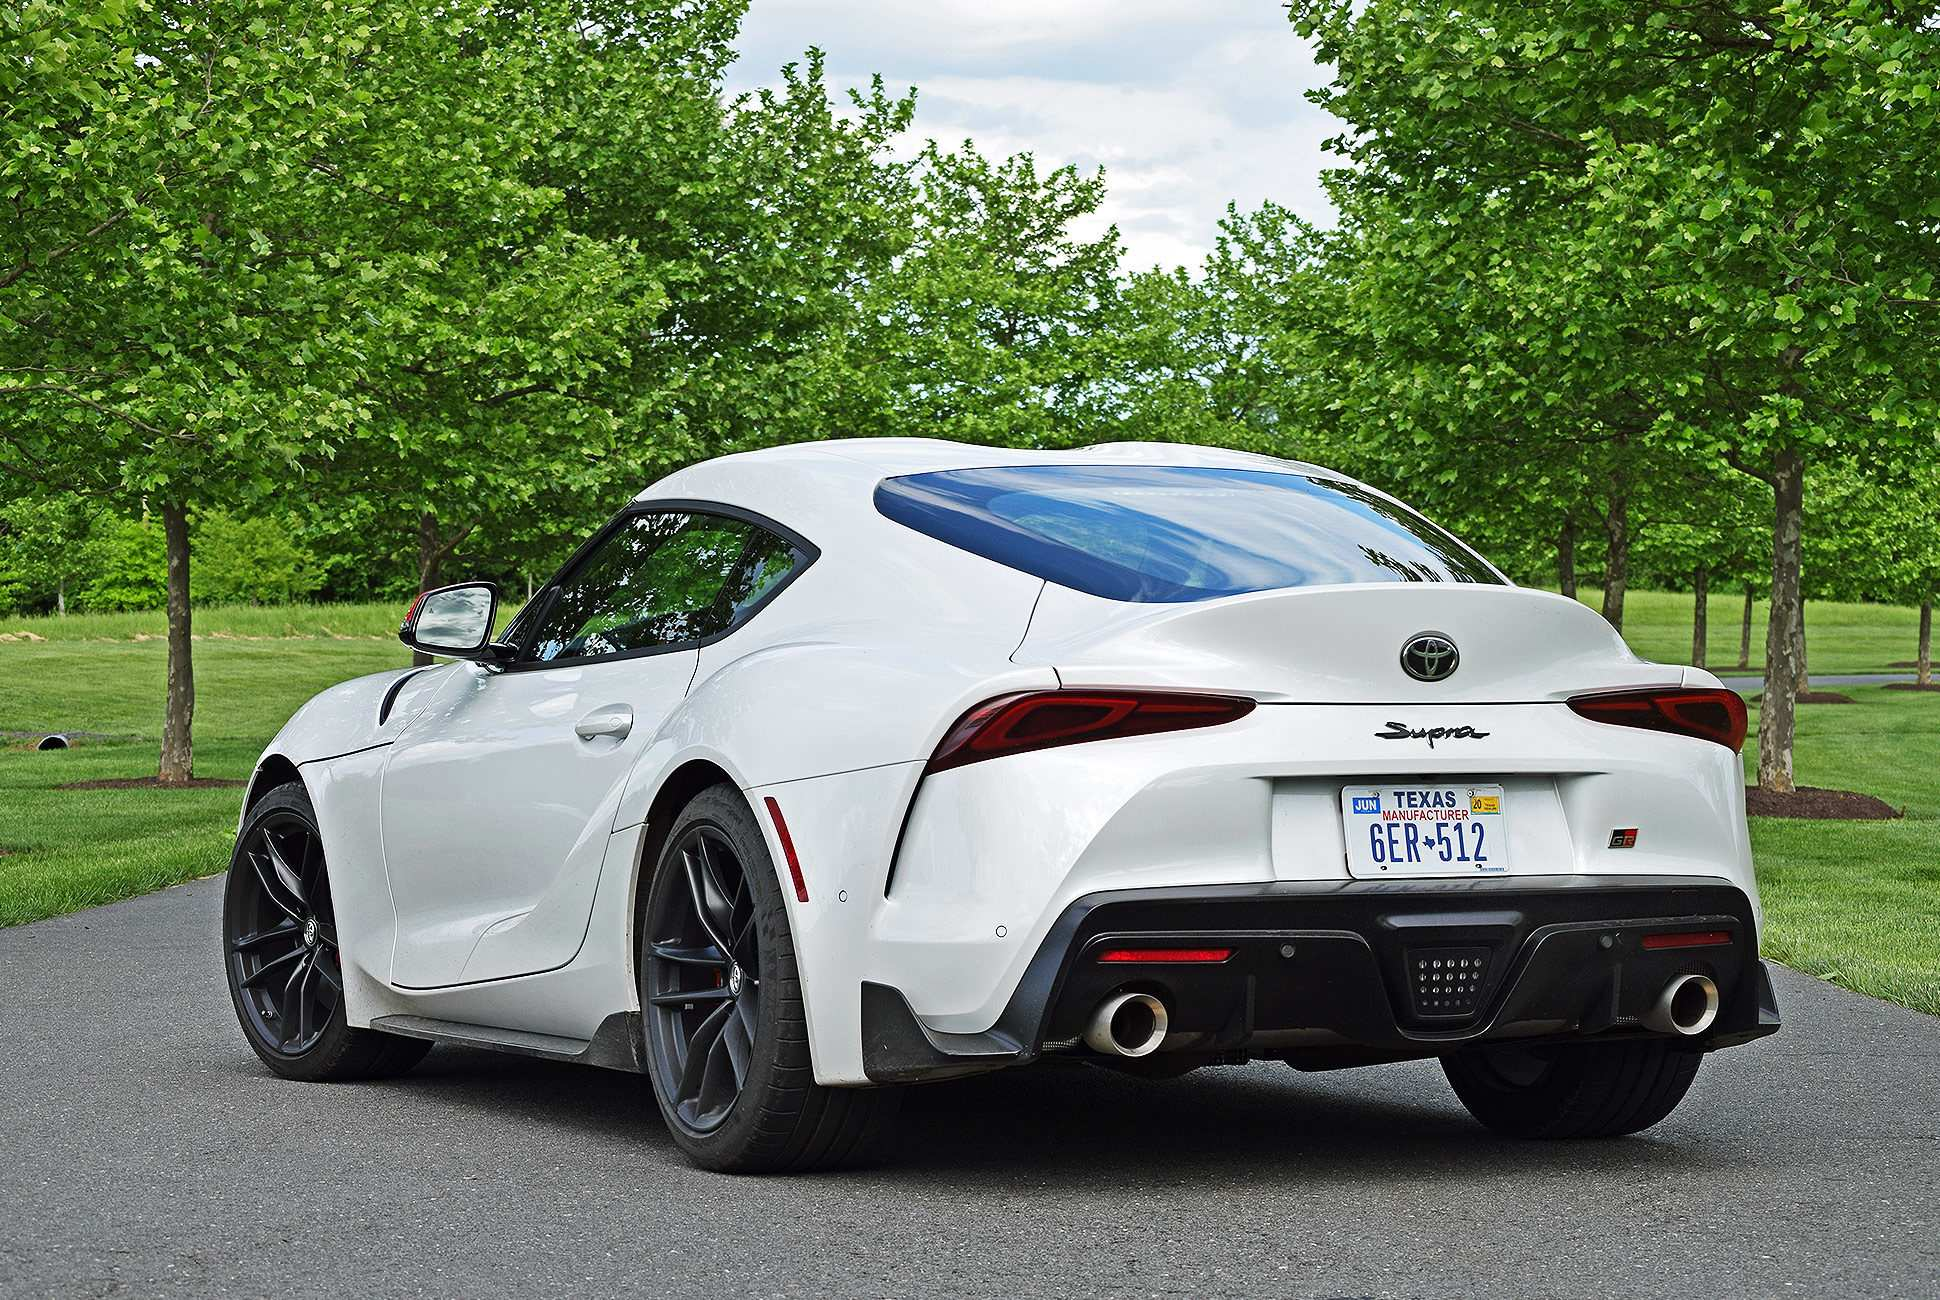 74 A Images Of 2020 Toyota Supra Price And Review